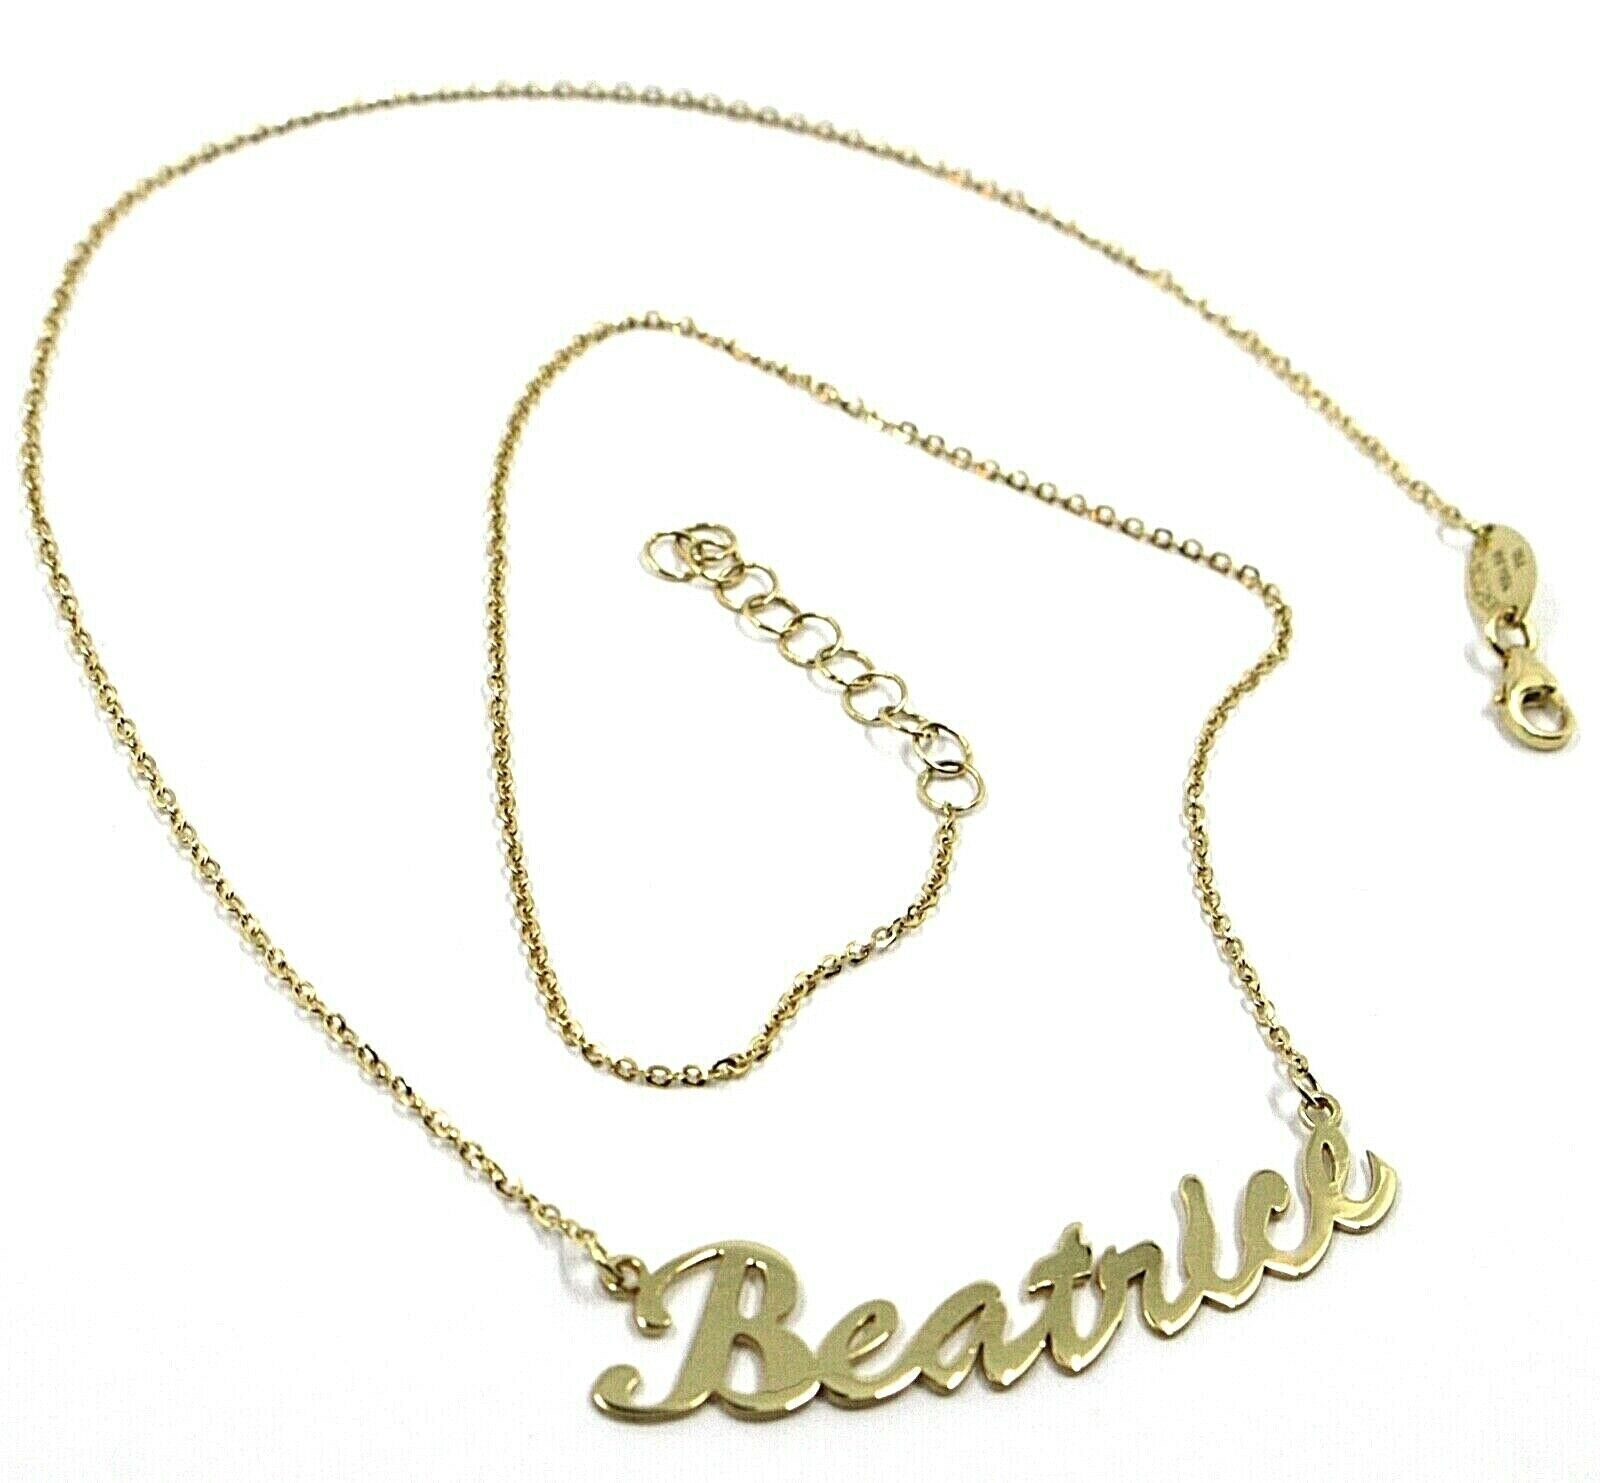 18K YELLOW GOLD NAME NECKLACE, BEATRICE, AVAILABLE ANY NAME, ROLO CHAIN